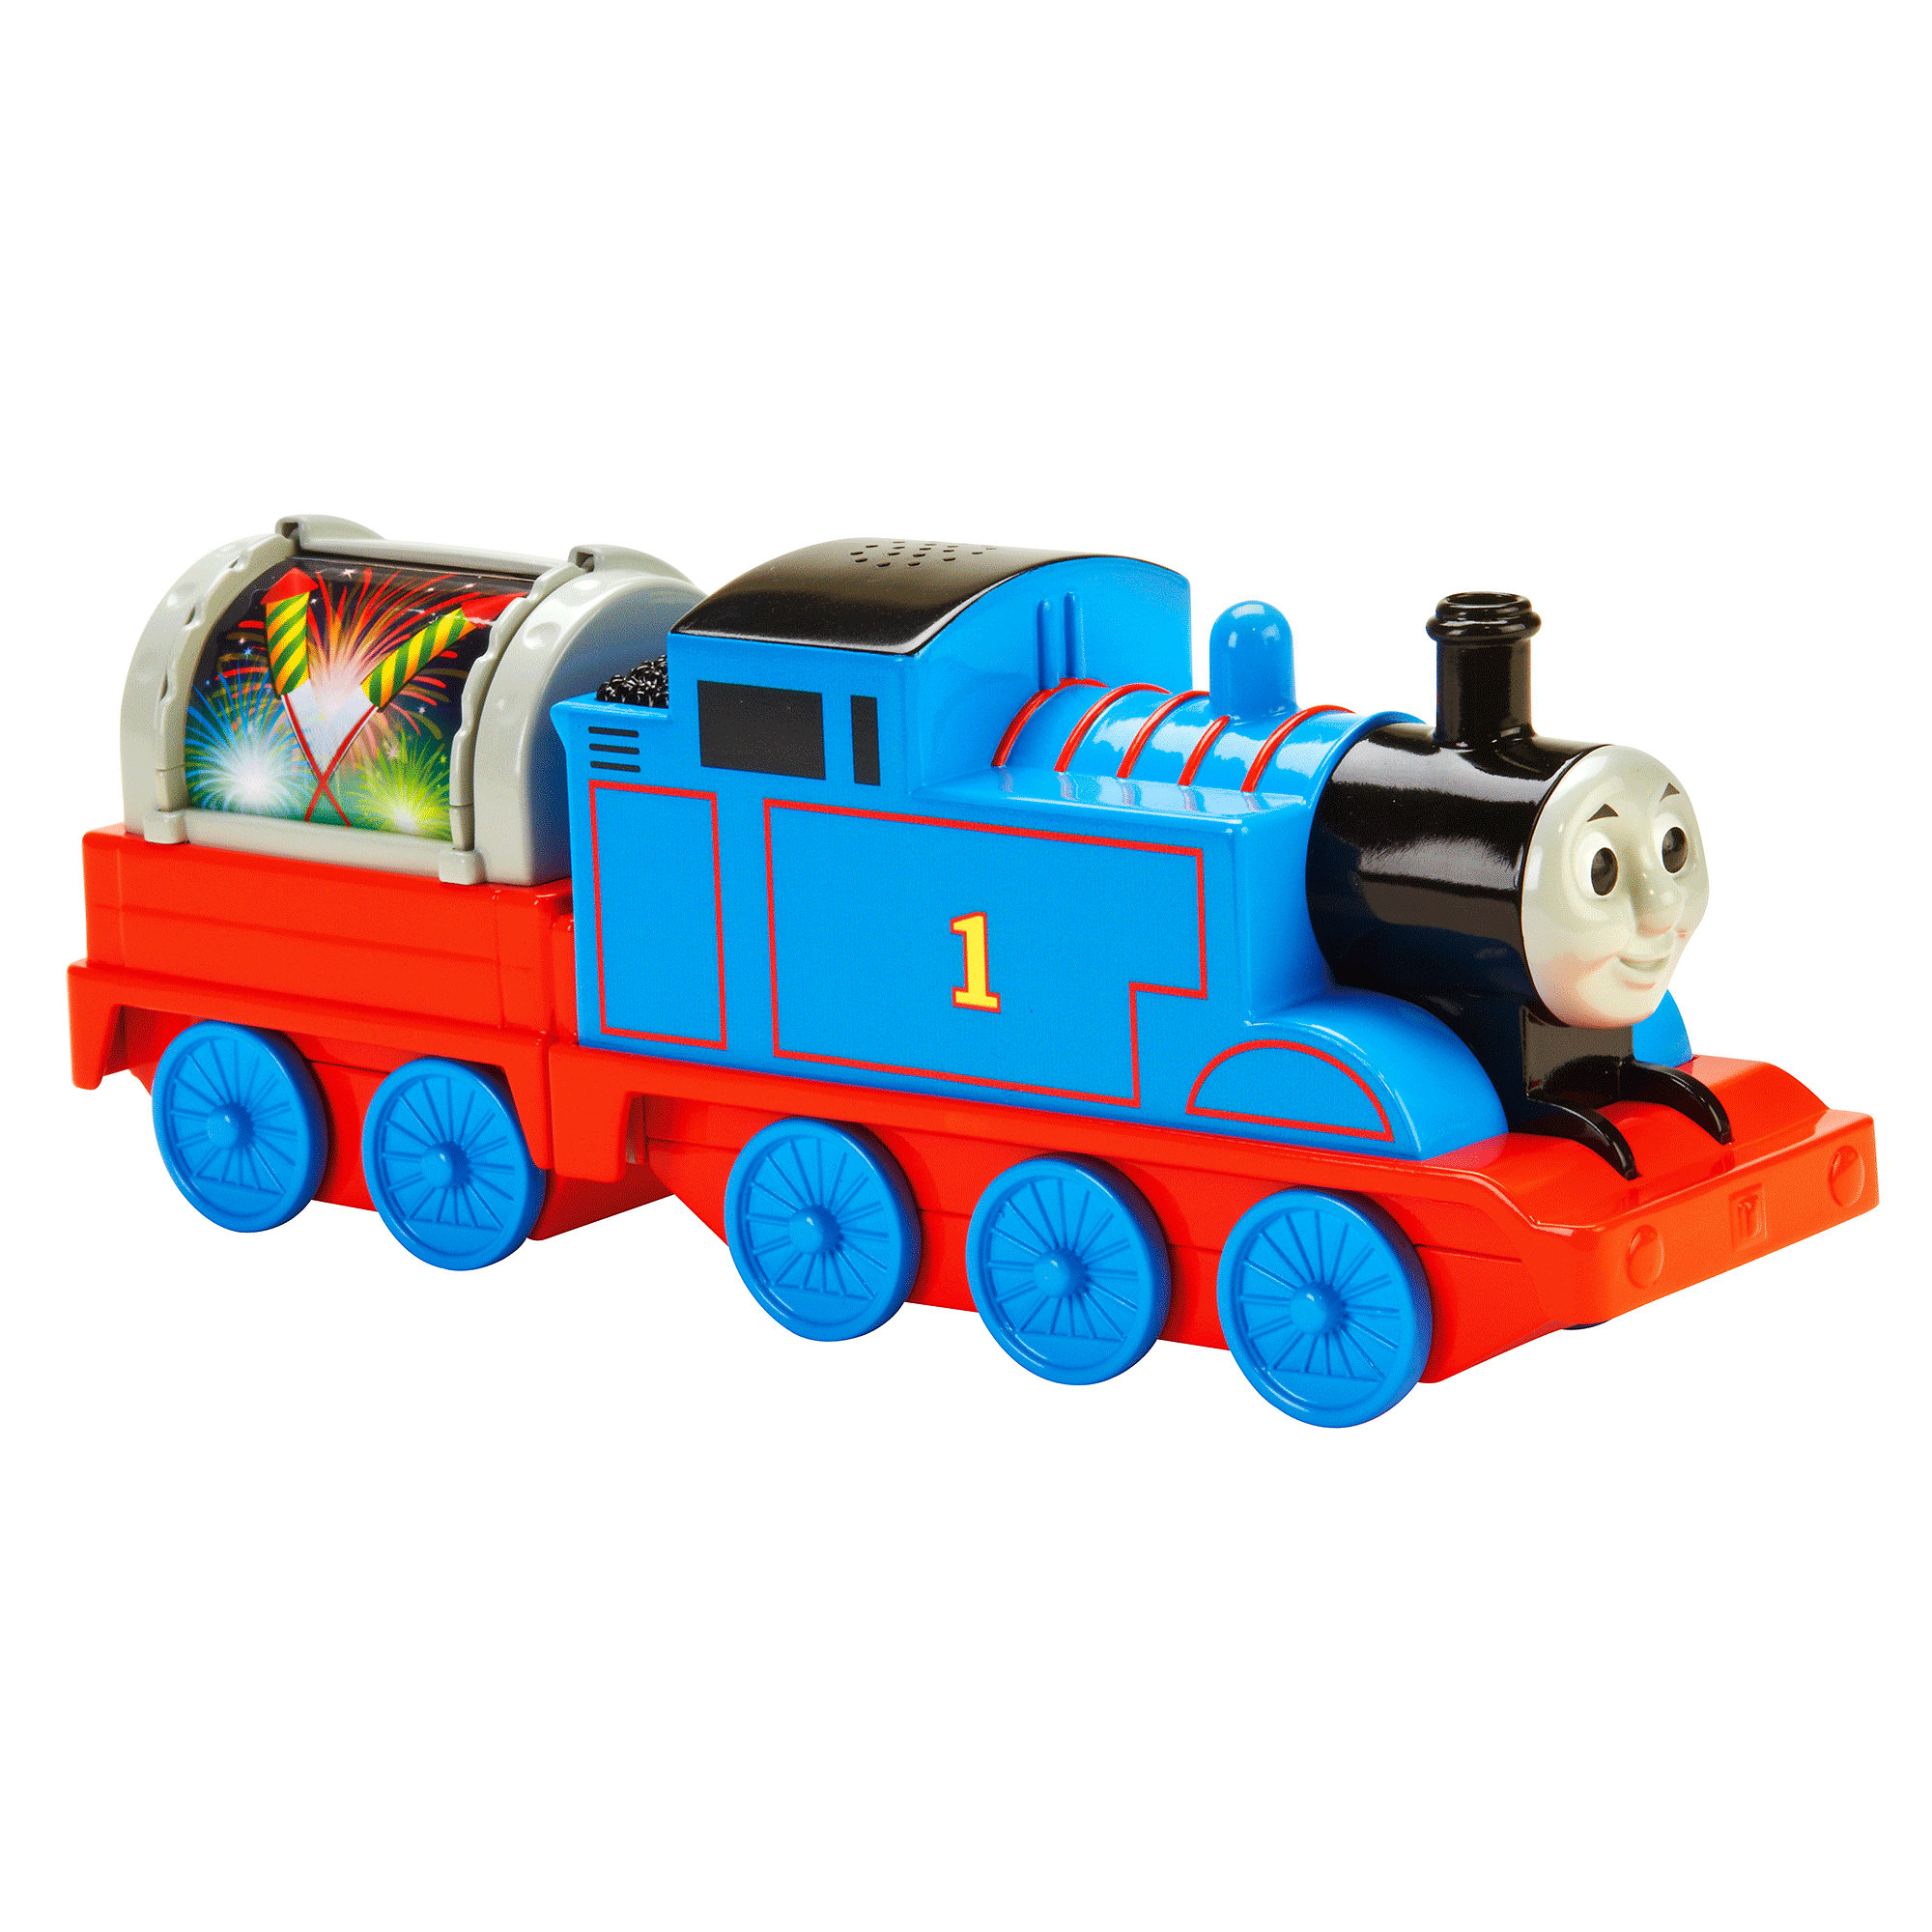 Fisher Price Thomas the Train Surprise Delivery Thomas by Mattel, Inc.